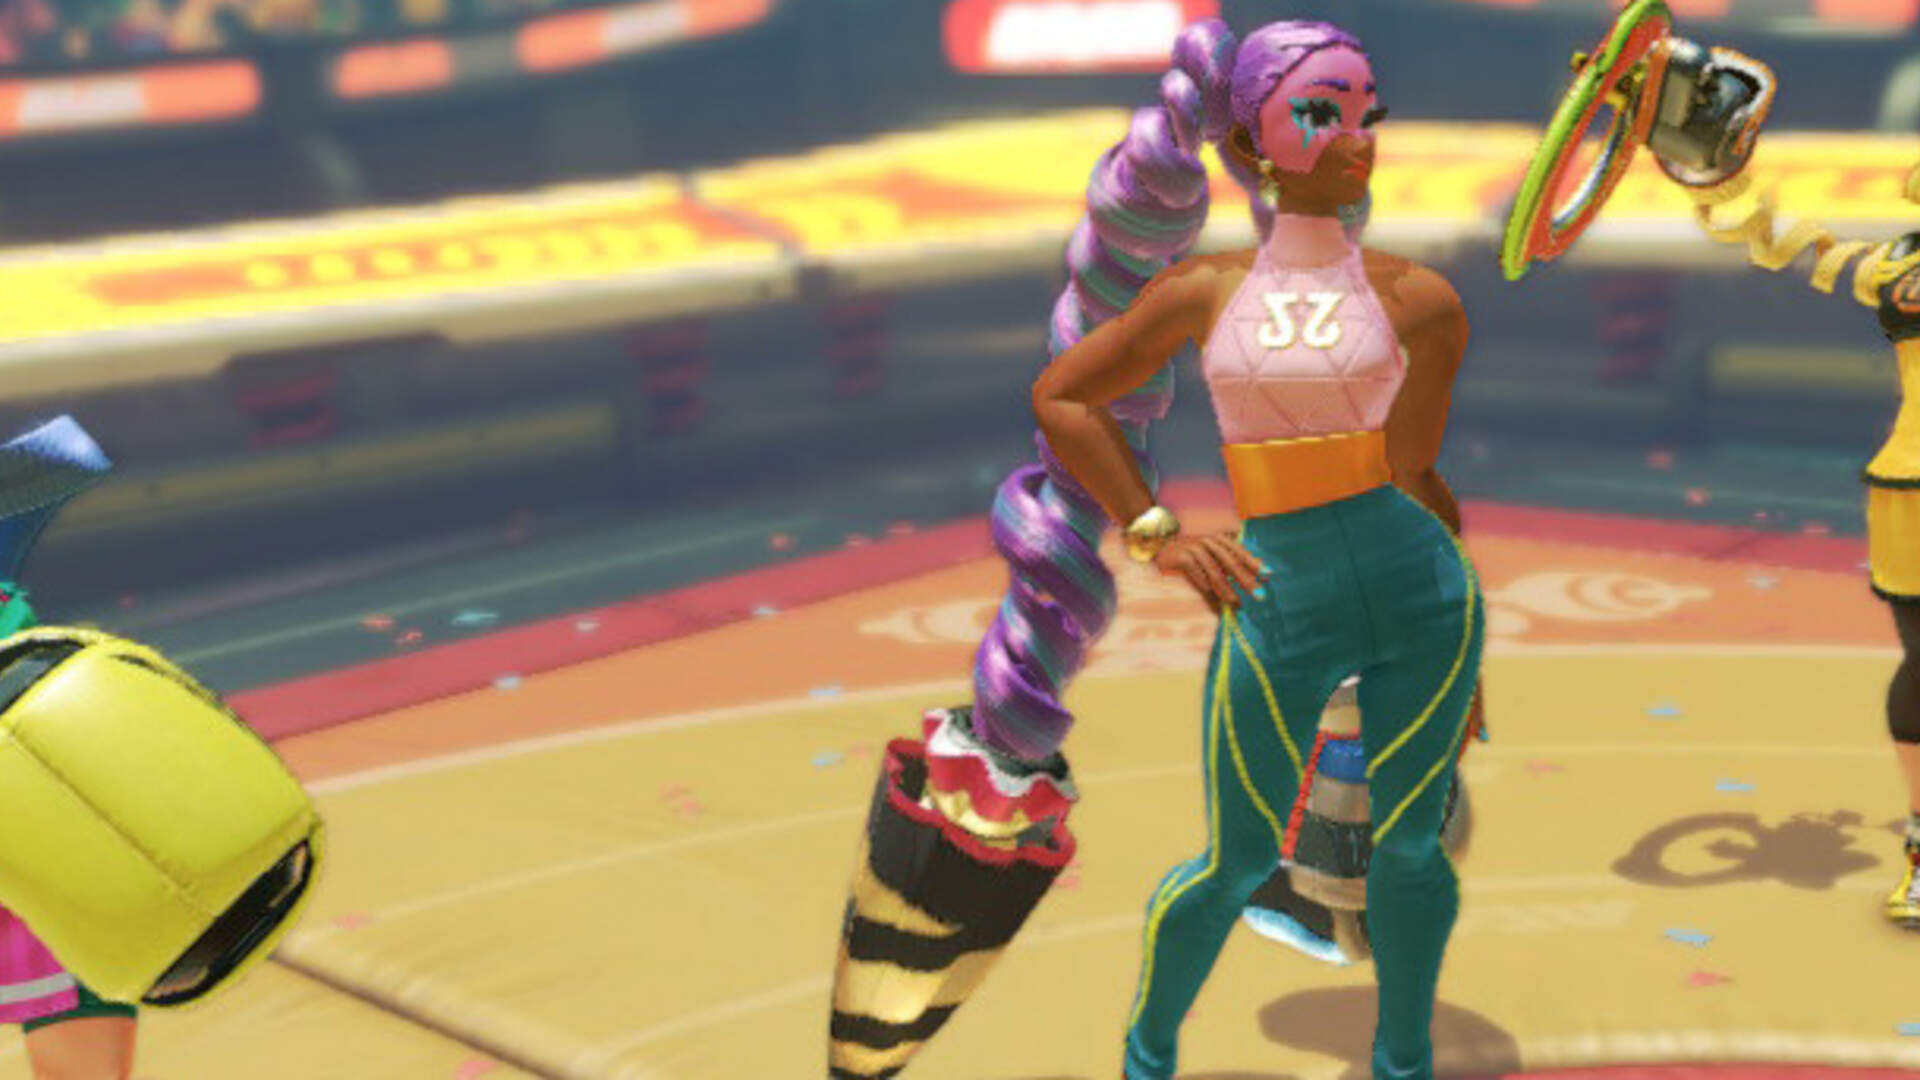 Arms is the Latest Conquest in Nintendo's Path to Make the Most Stylish Characters in Games